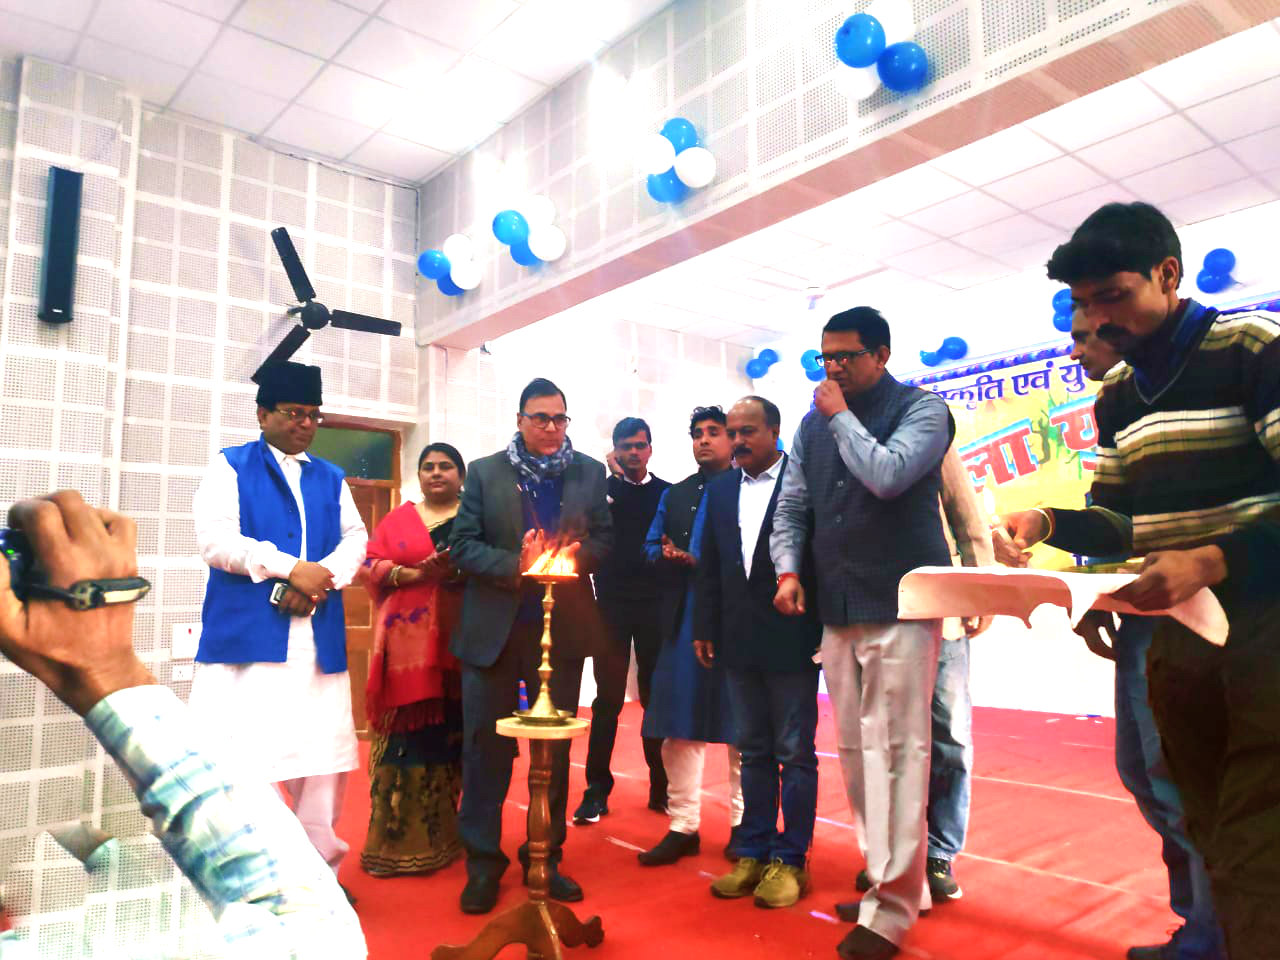 Samajsevi-Sahityakar Dr.Madhepuri along with ADM Shri Upendra Kumar, SDM Shri Vrindalal and others attending inaugural function of